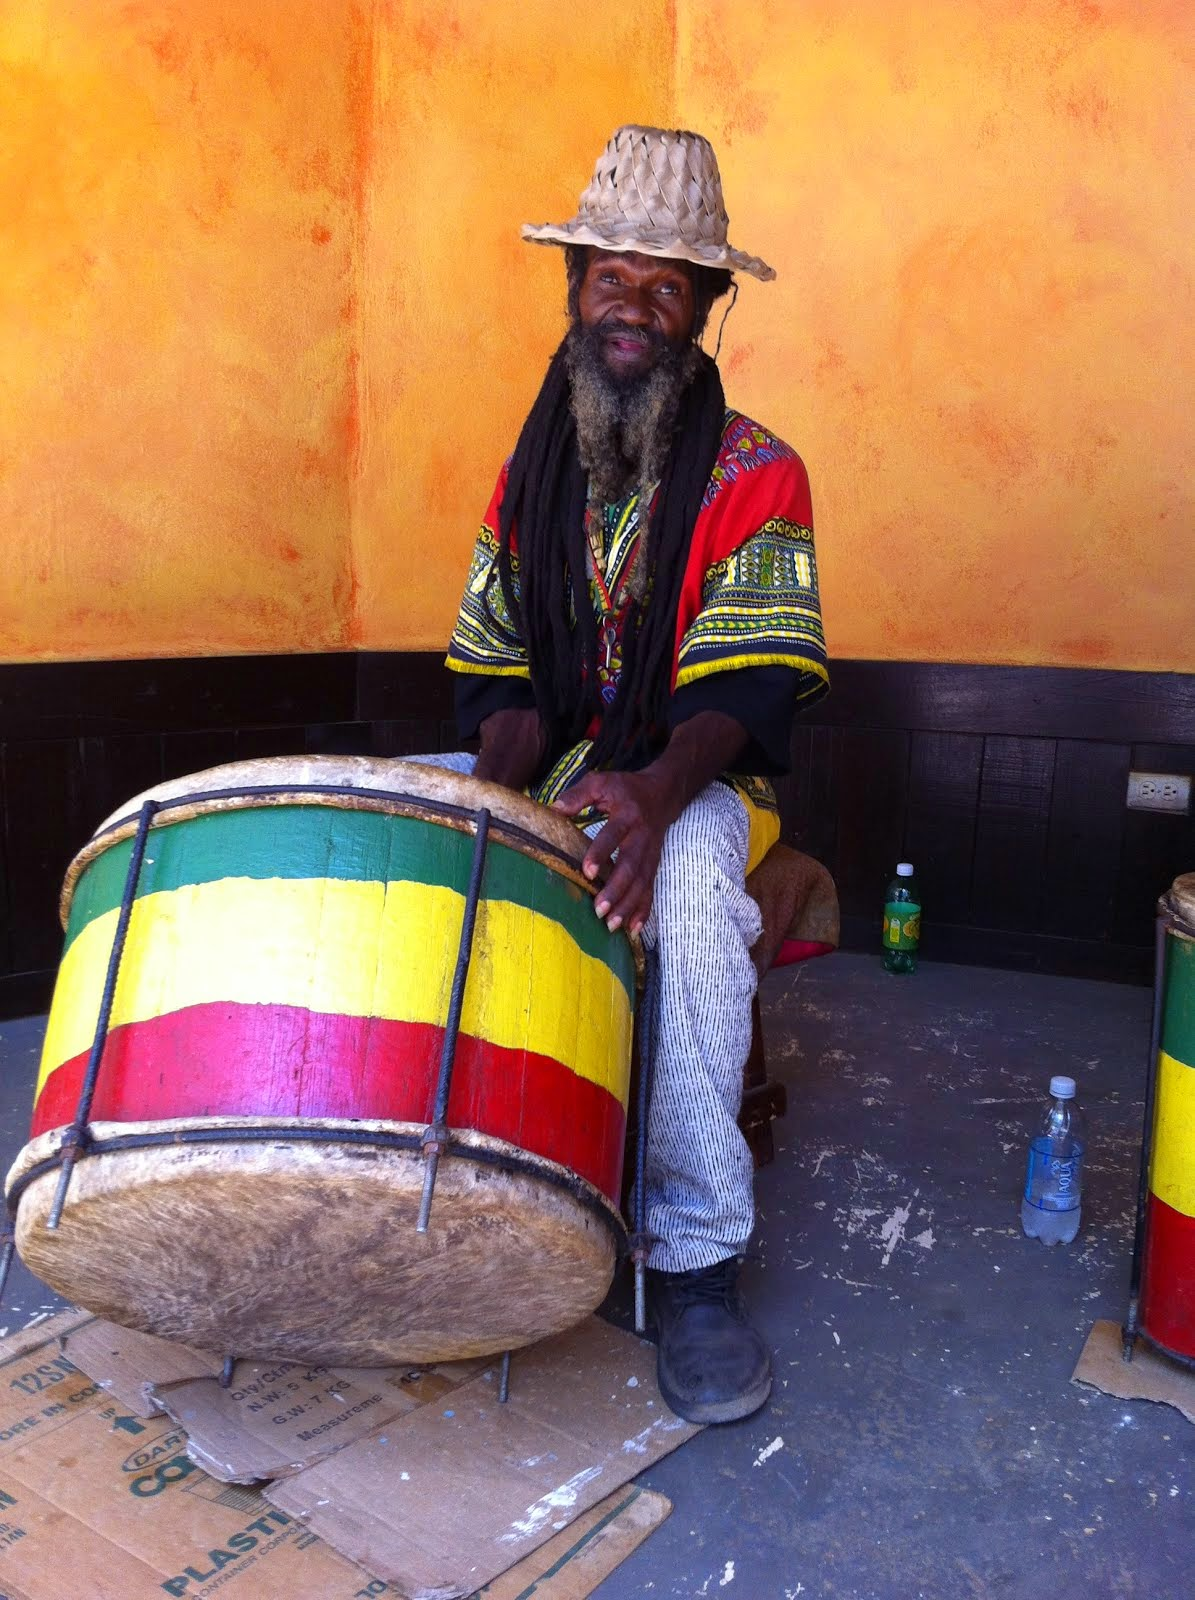 One Love: Beat the drum!